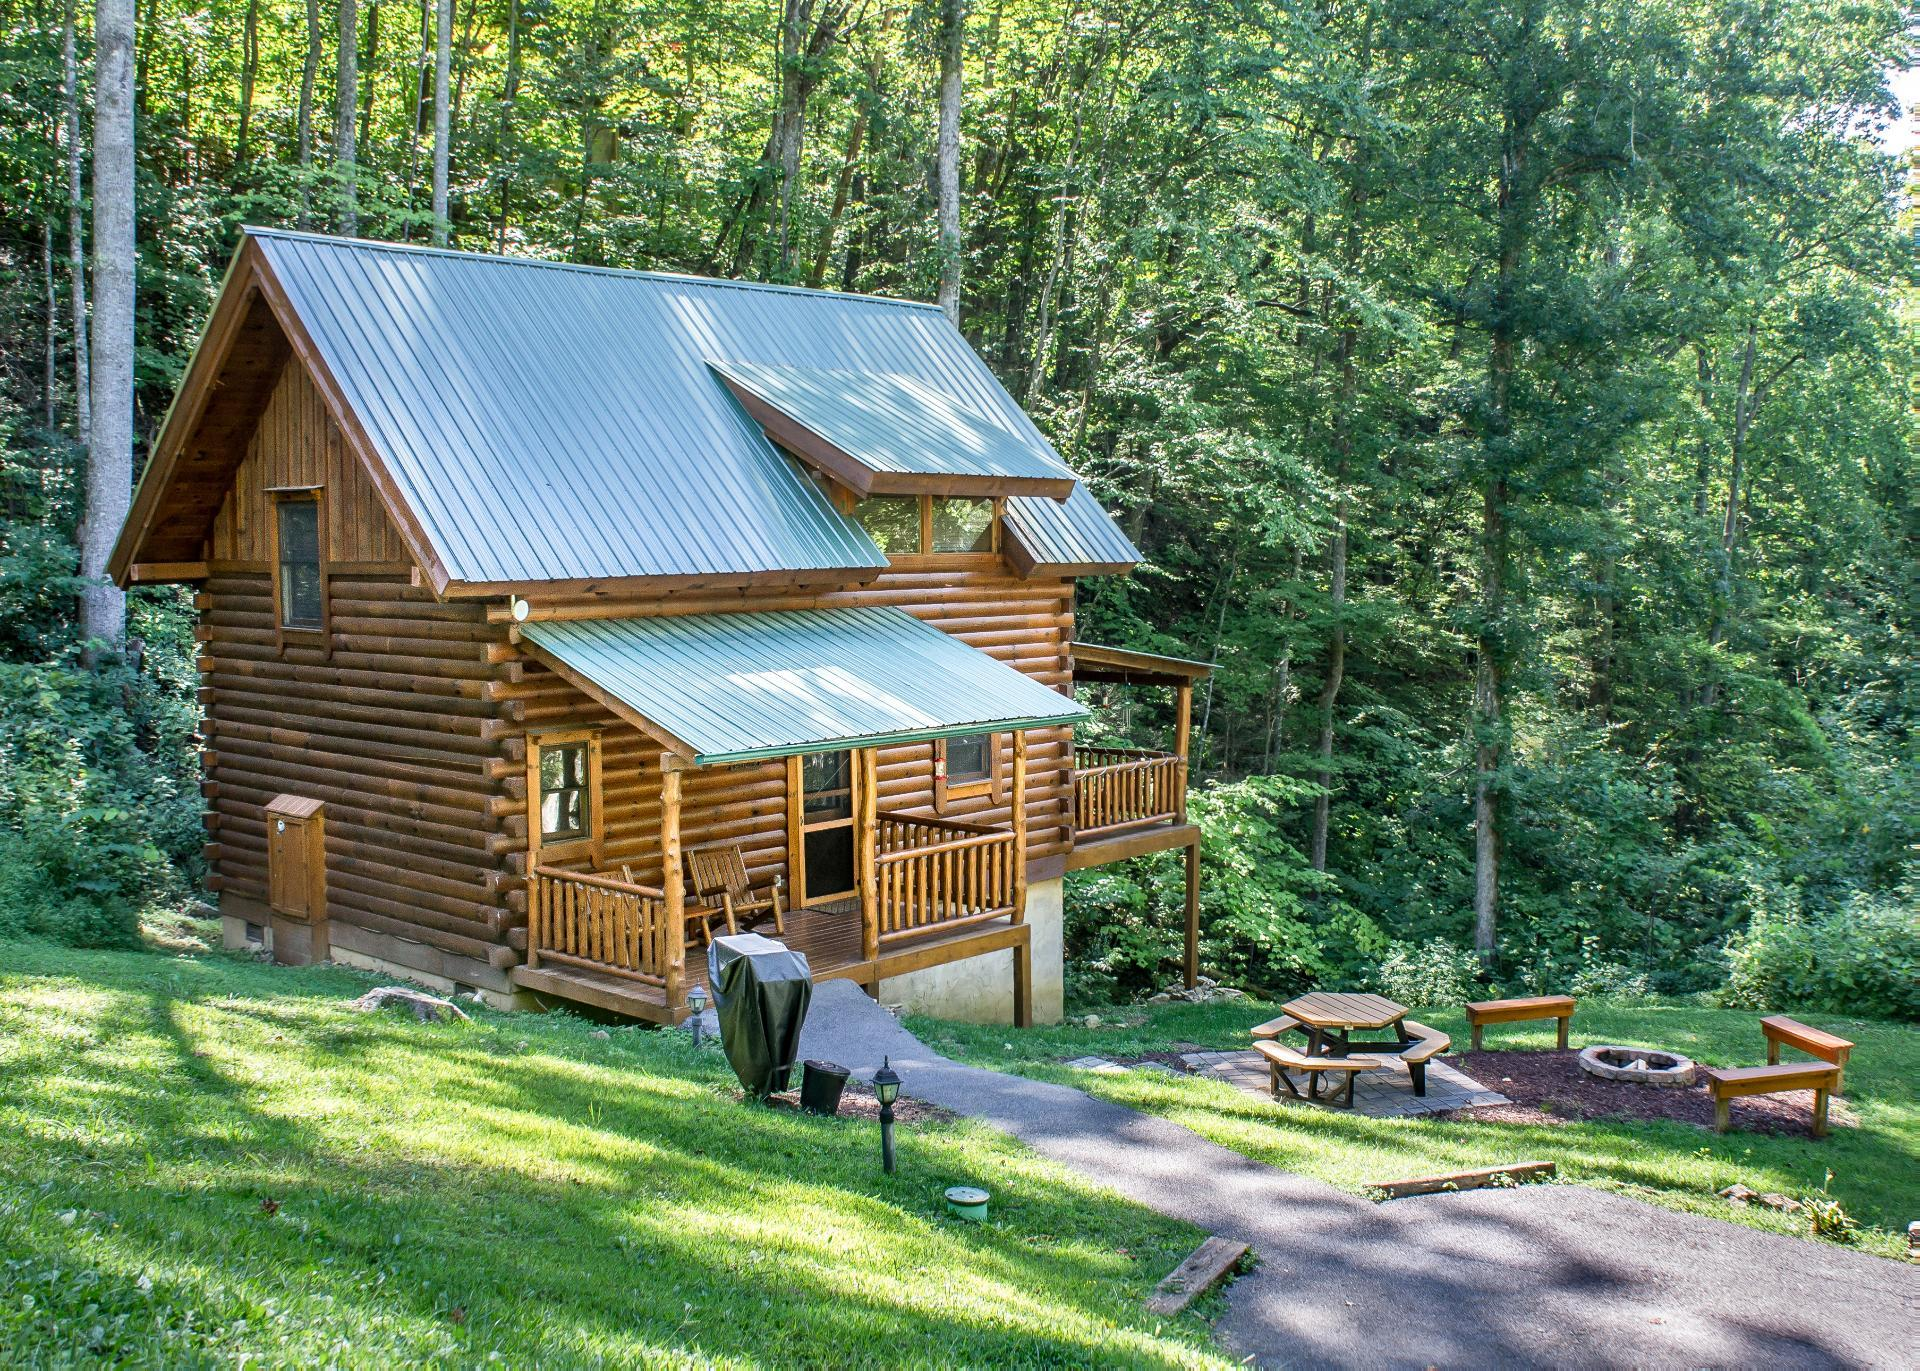 Property Image 2 - Modern Cabin on Lush Grounds with Hot Tub and Fire Pit